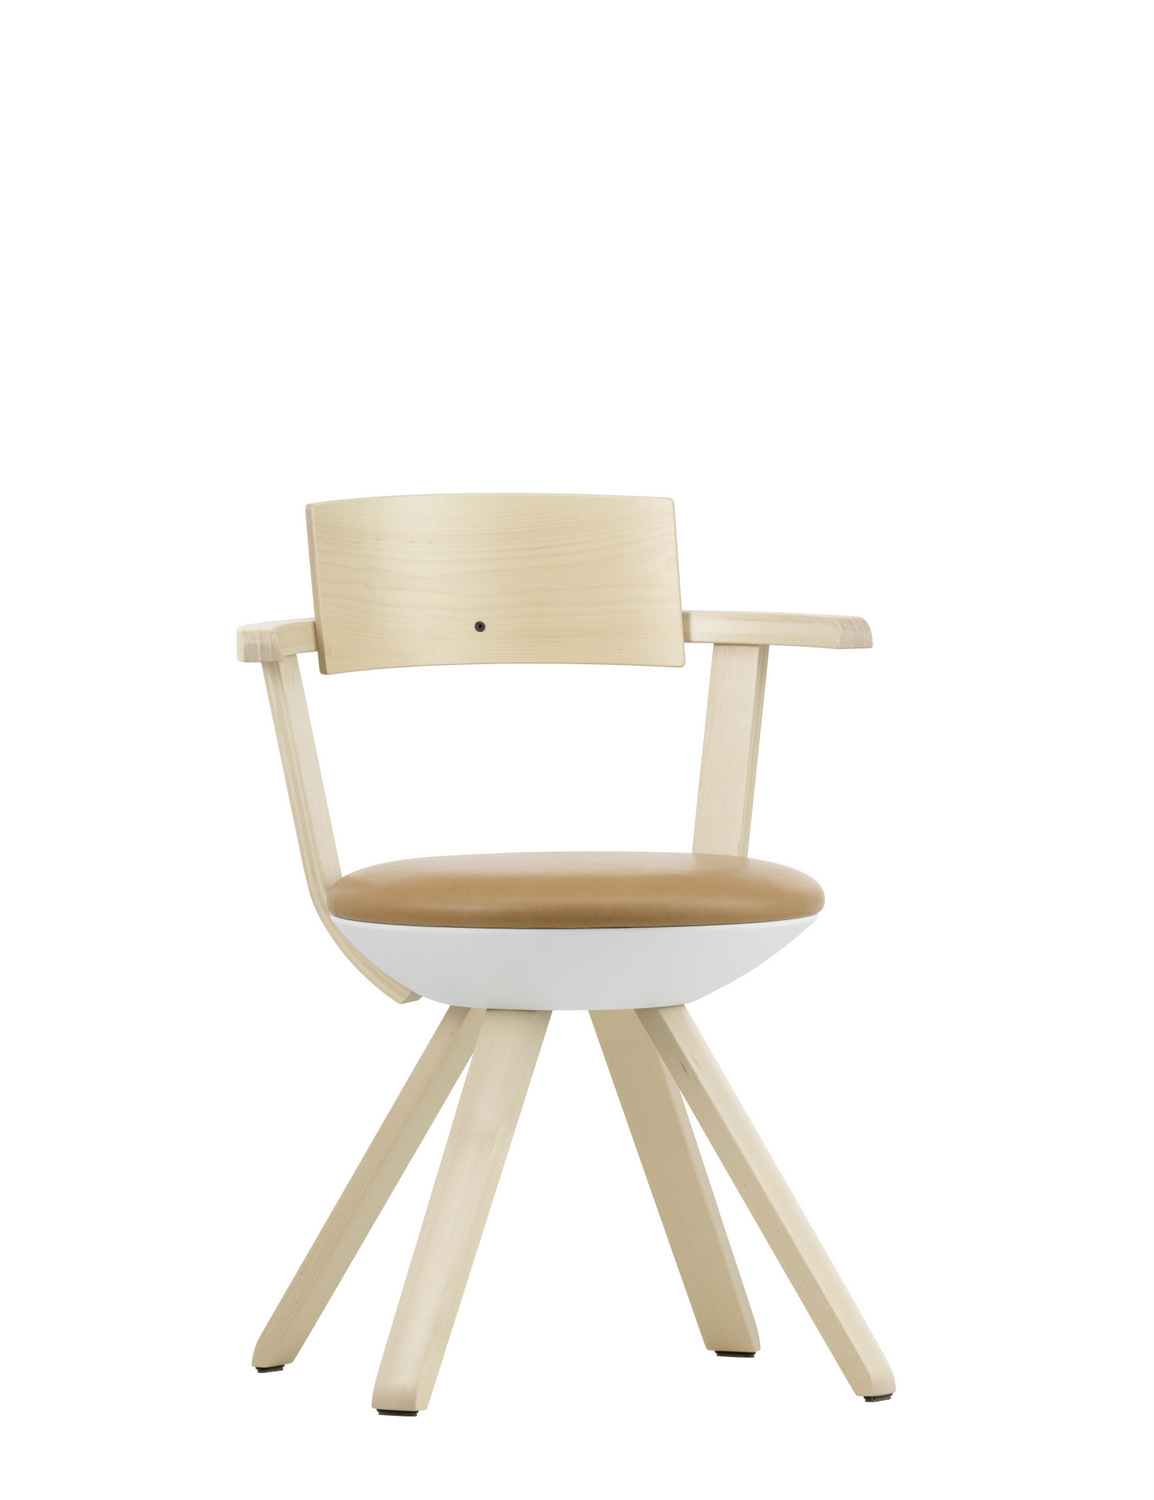 Rival Dining Chair by Konstantin Grcic for Artek